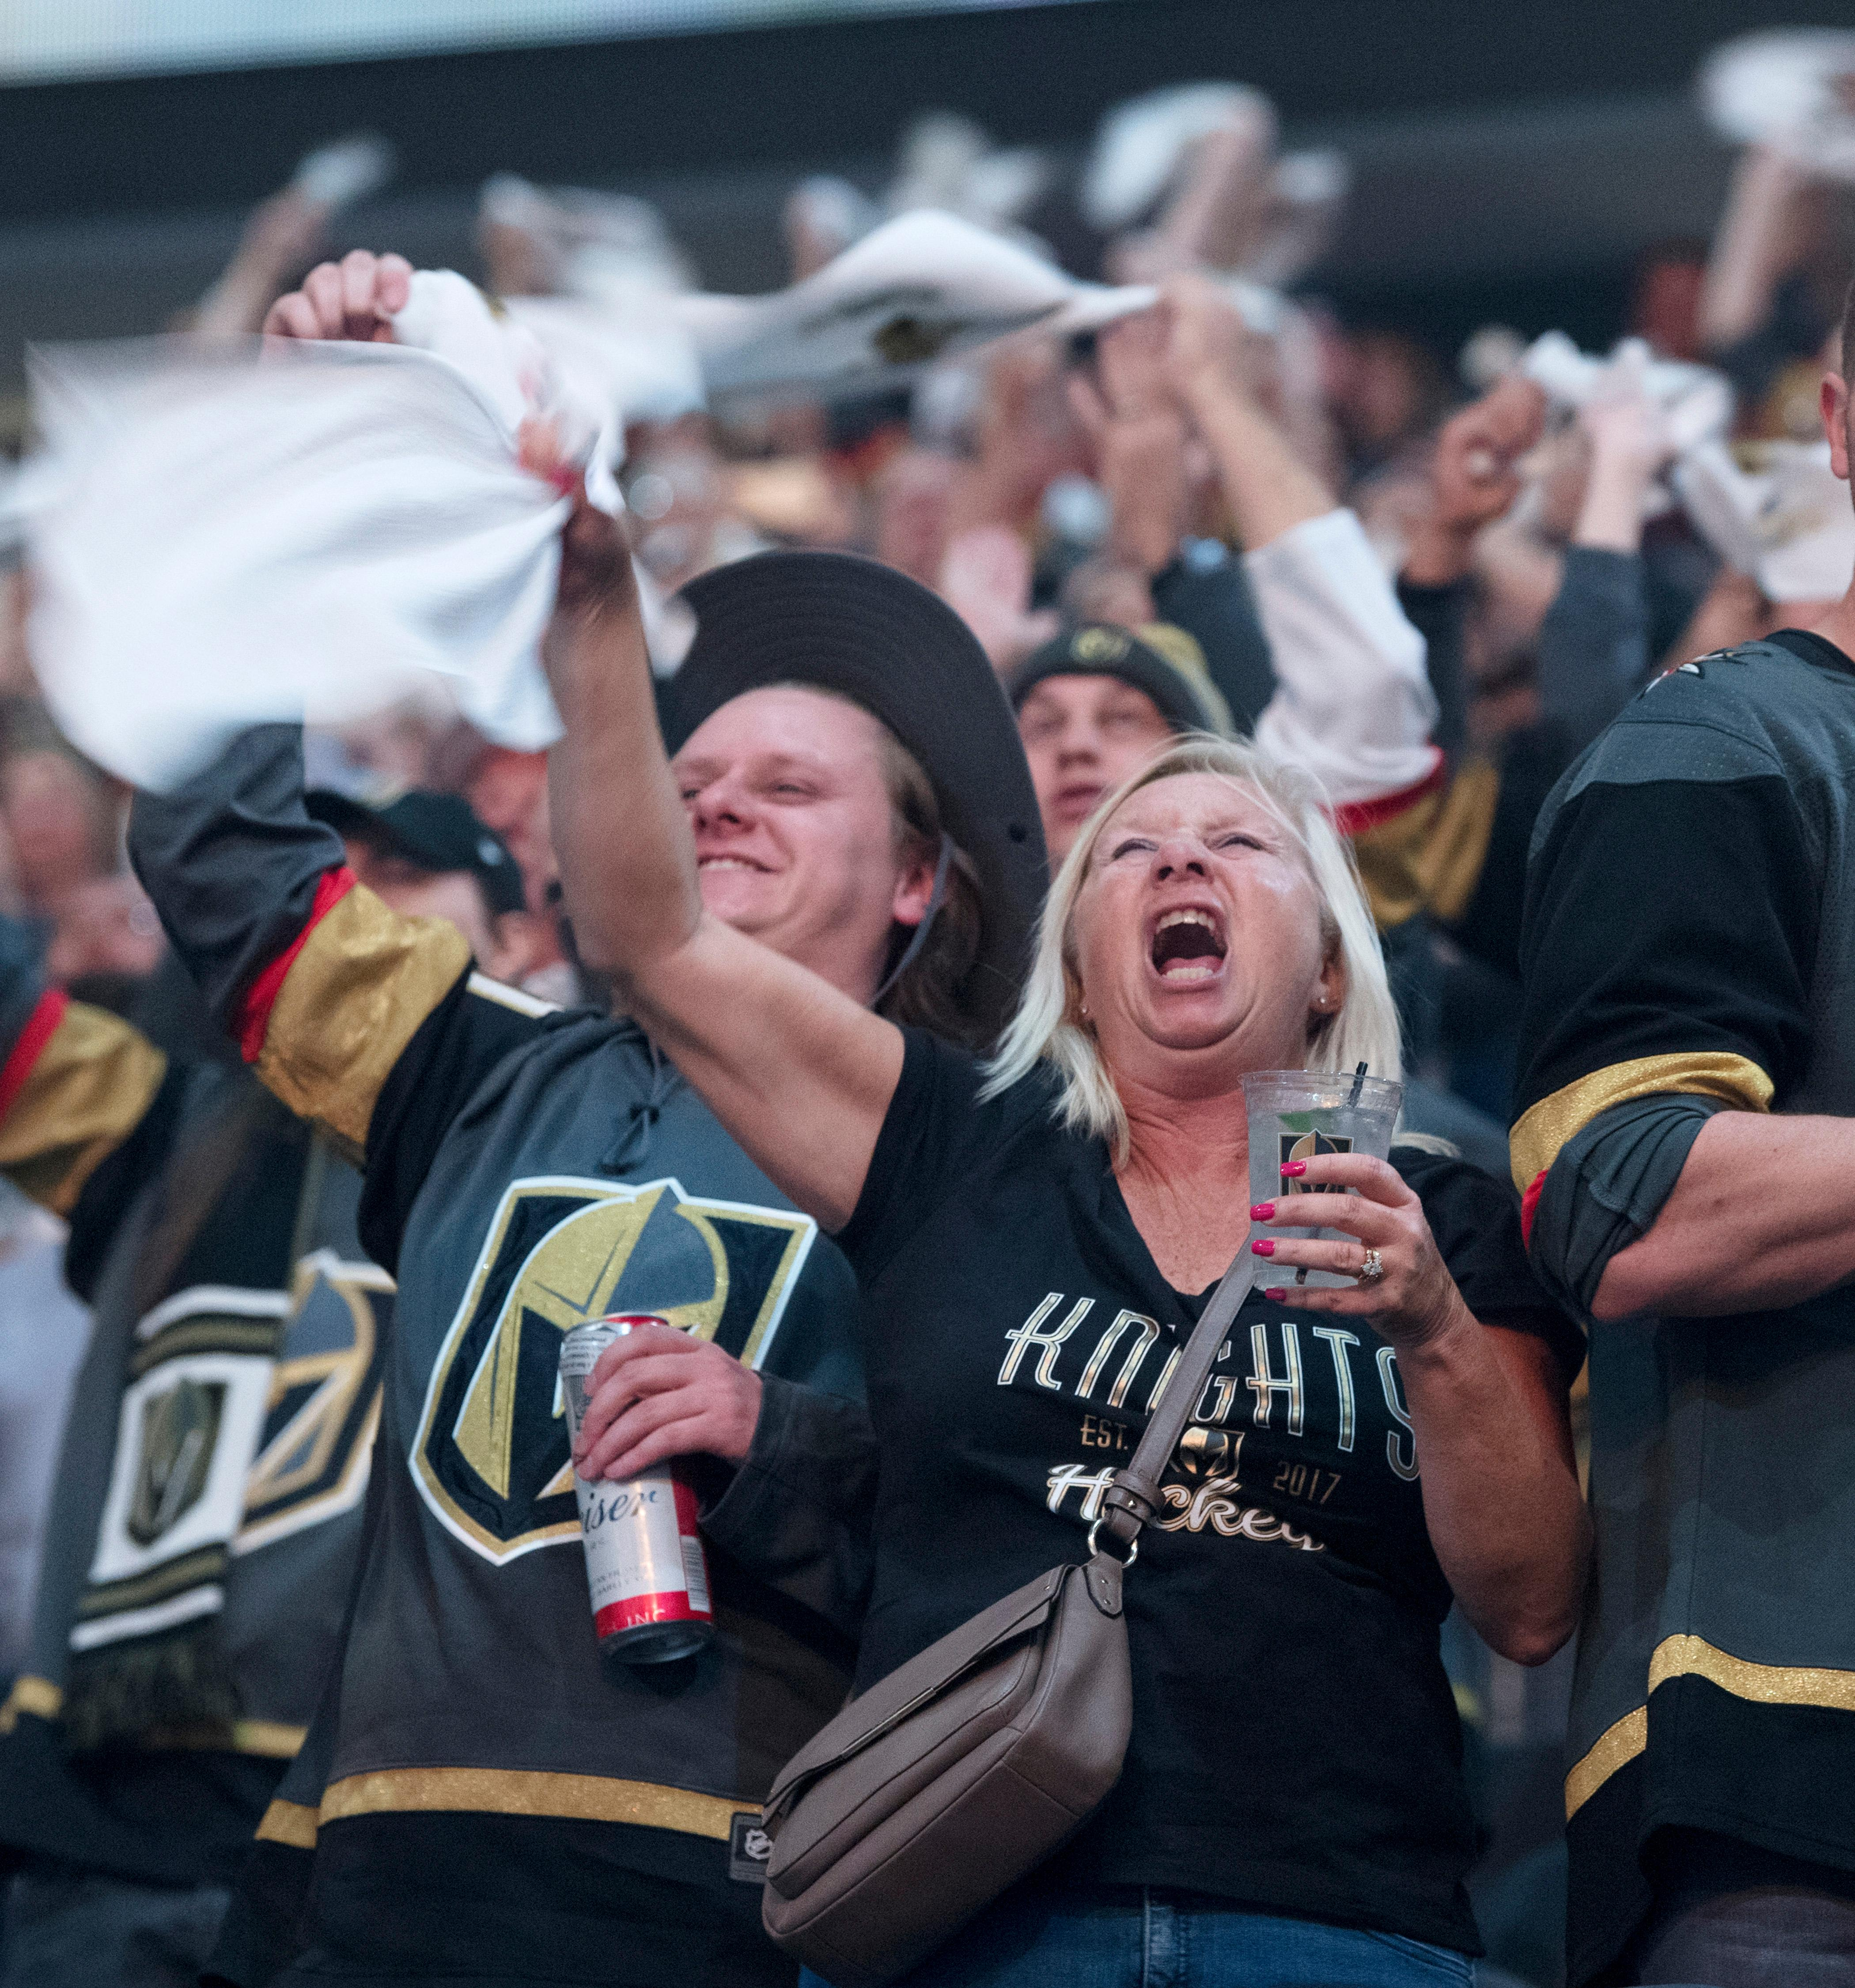 Vegas Golden Knights fans cheer before the first period of Game 1 of their NHL hockey first-round playoff series against the Los Angeles Kings Wednesday, April 11, 2018 at T-Mobile Arena. The Knights won 1-0. CREDIT: Sam Morris/Las Vegas News Bureau